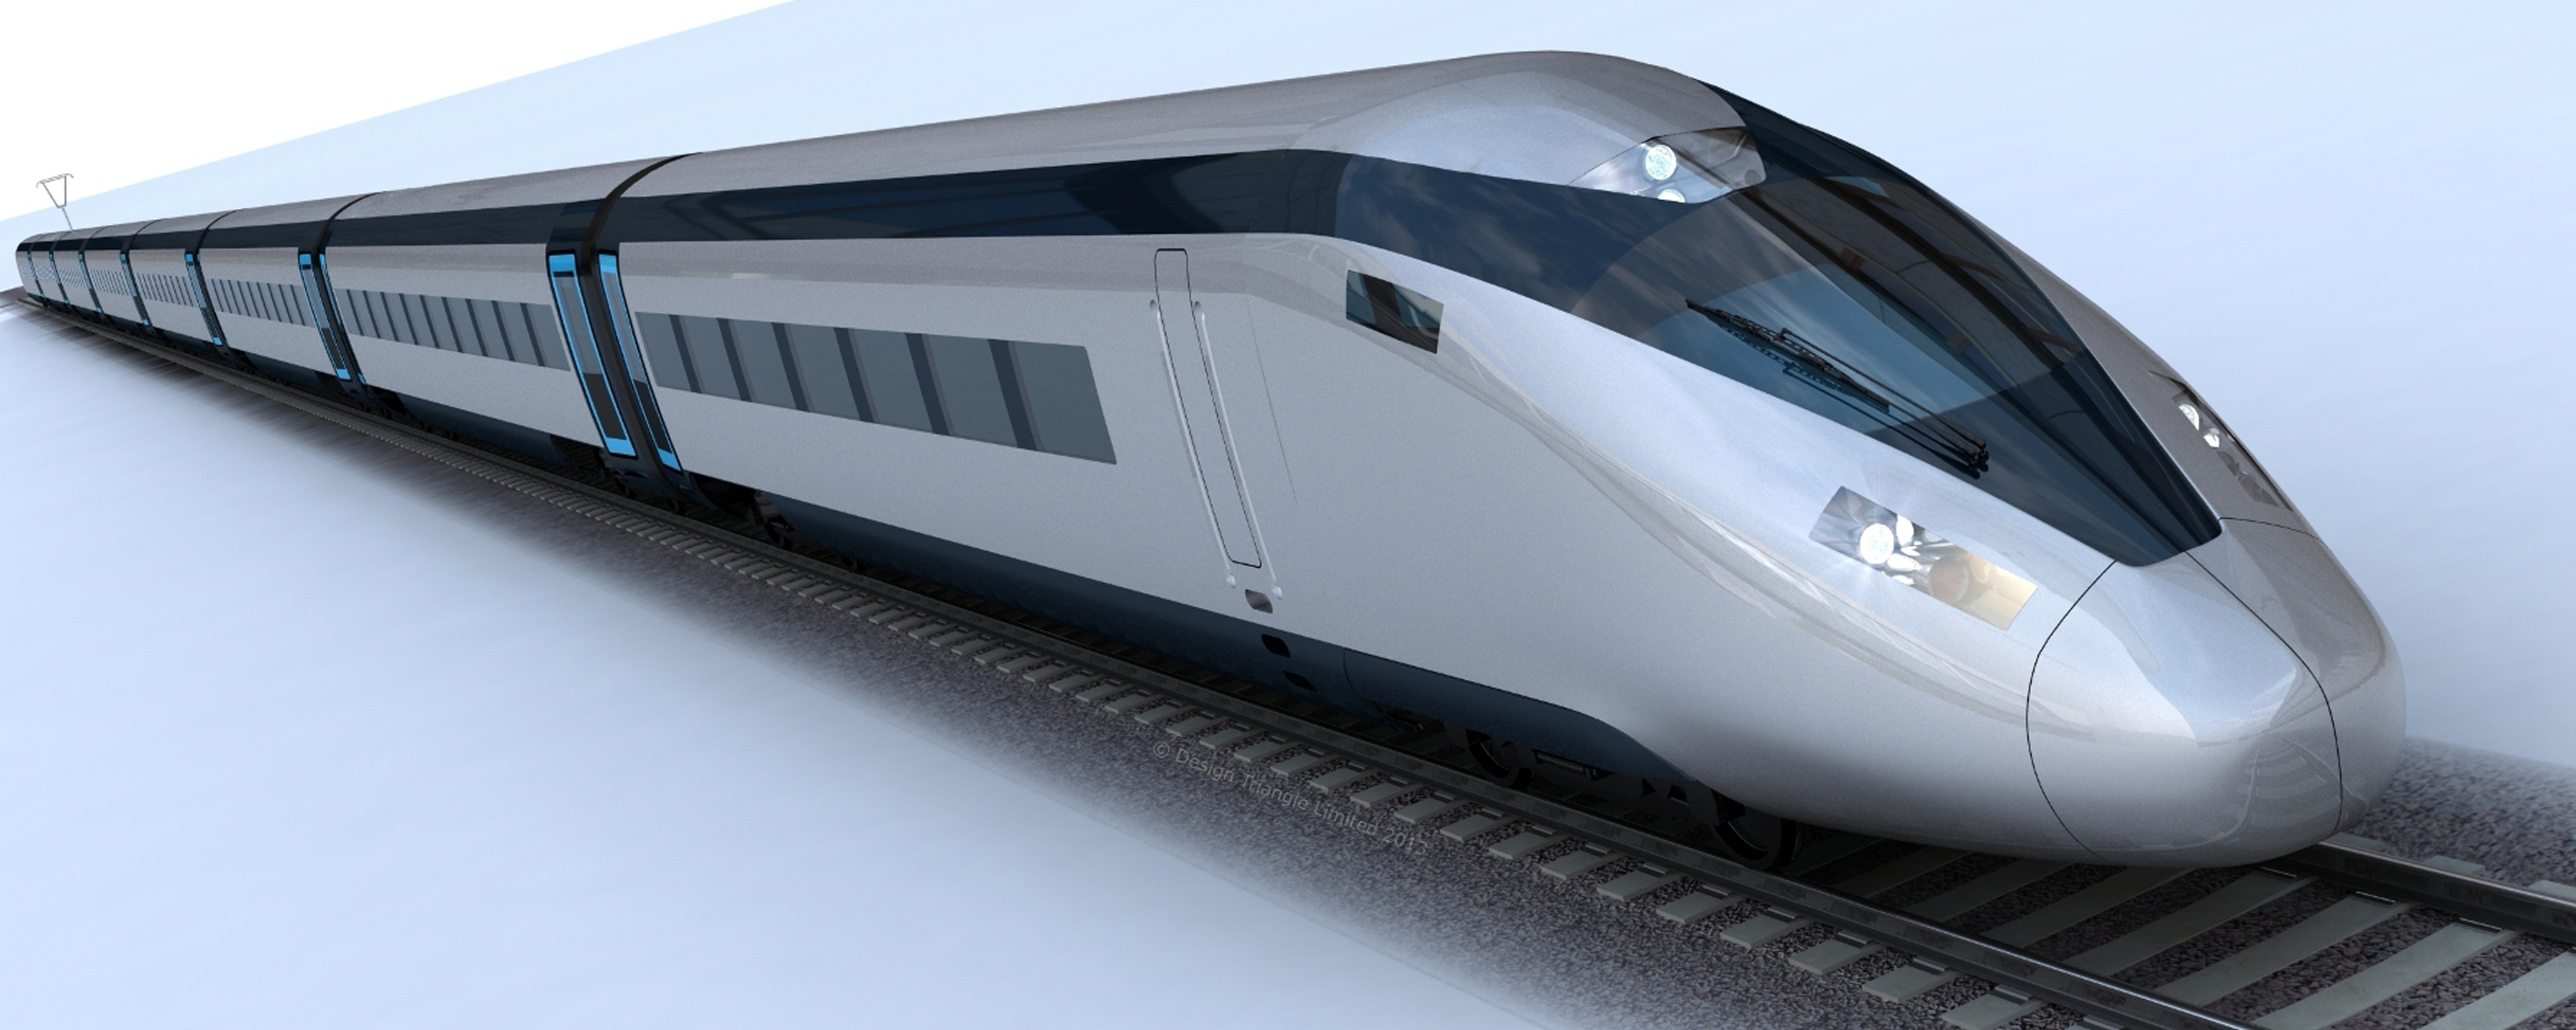 HS2 High Speed Railway